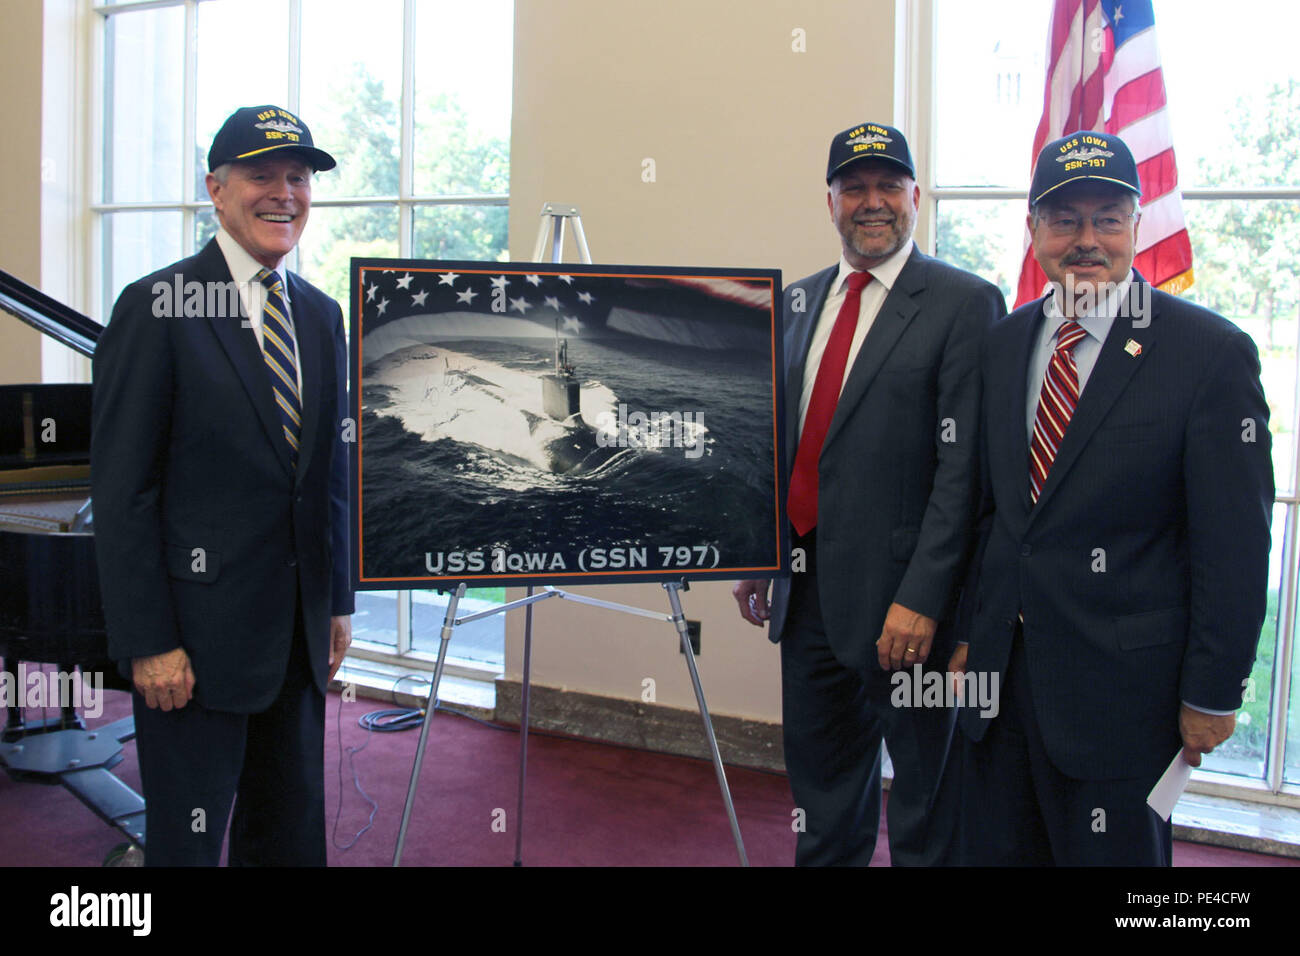 AMES, Iowa, (Sept. 2, 2015) -- From left: Secretary of the Navy (SECNAV) Ray Mabus, Iowa State President Steven Leath and Iowa Gov. Terry Branstad stand next to a graphic representation of the Navy's newest Virginia-class attack submarine, the future USS Iowa (SSN 797) at Iowa State University in Ames, Iowa. Mabus thanked the people of Iowa for their support and contributions to the Navy and discussed the special bond that exists between a state and its namesake vessel. (U.S. Navy photo courtesy of ISU NROTC/Released) Stock Photo